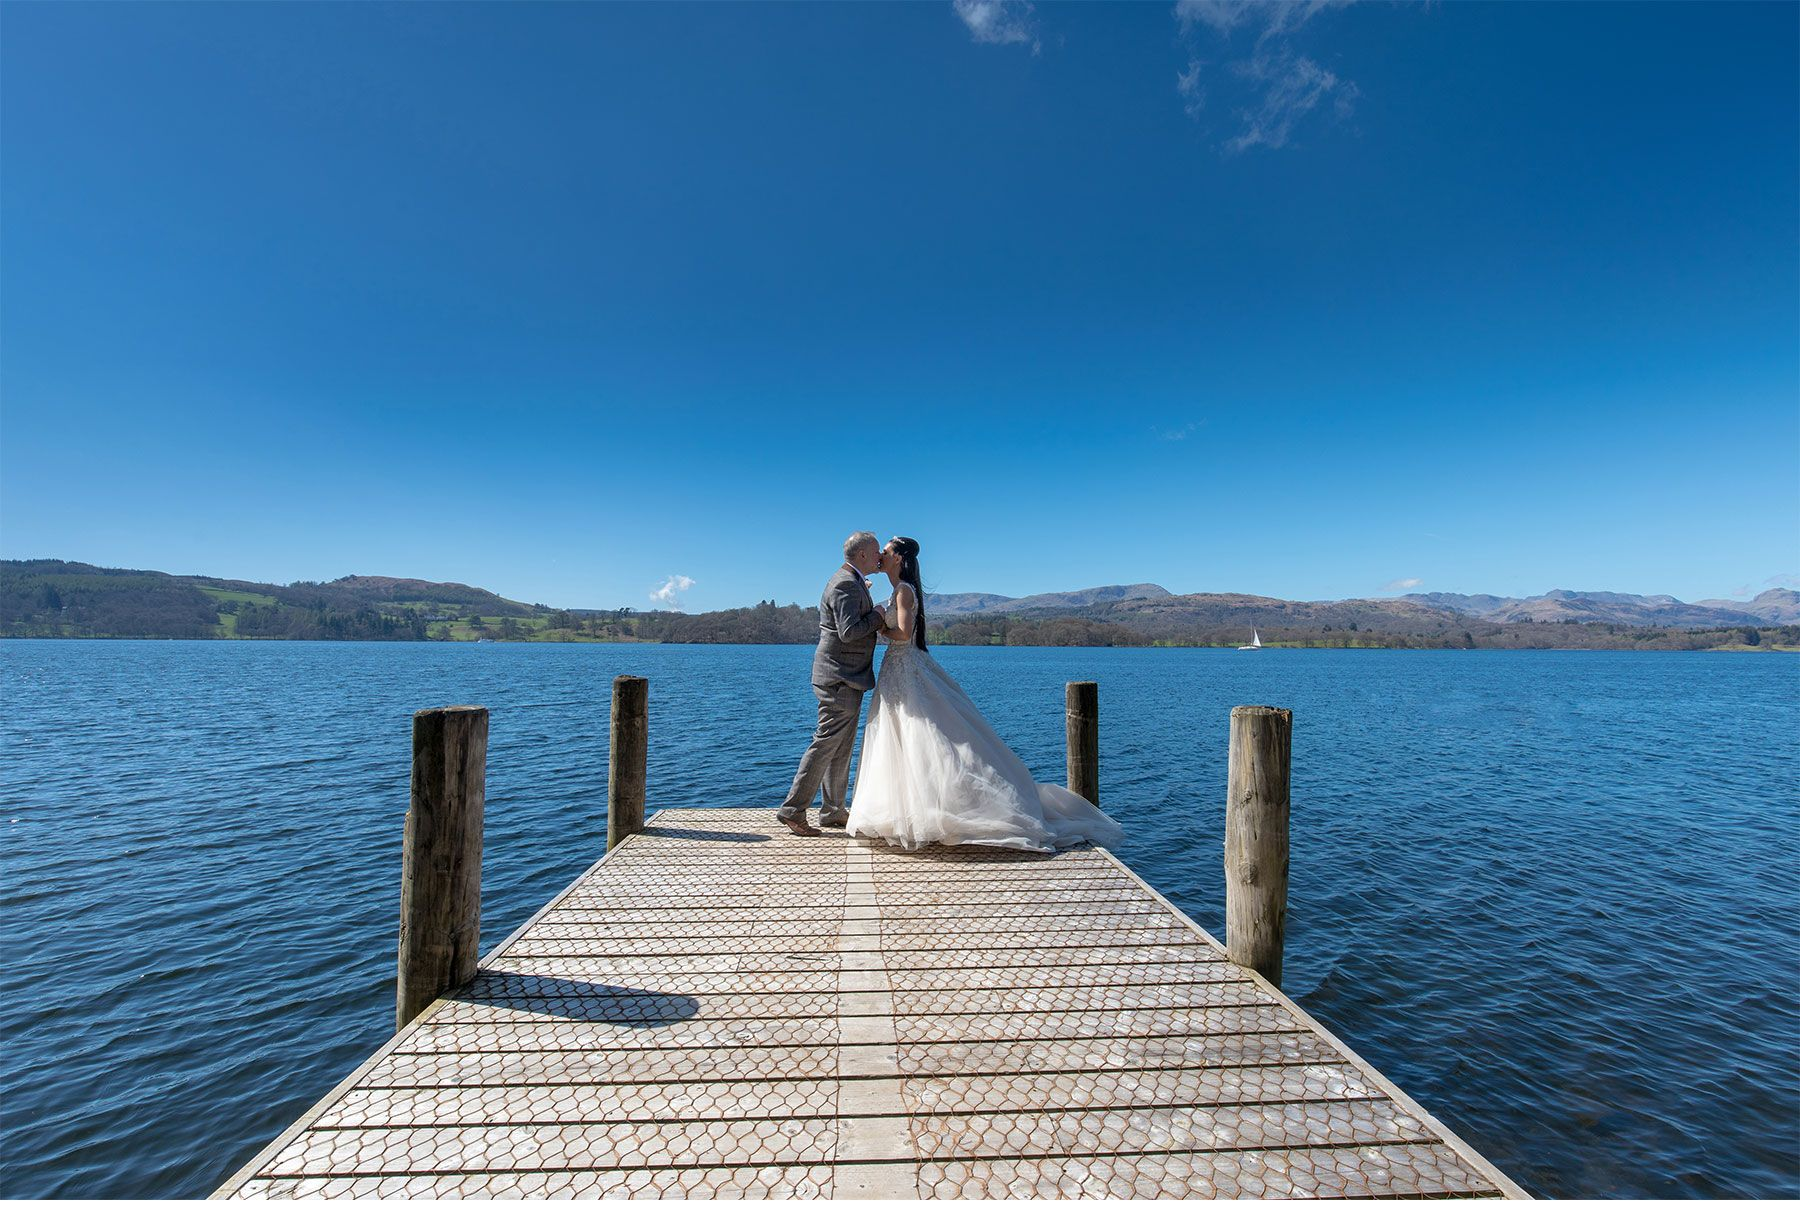 The bride and groom set against lovely blue sky on Lake Windermere